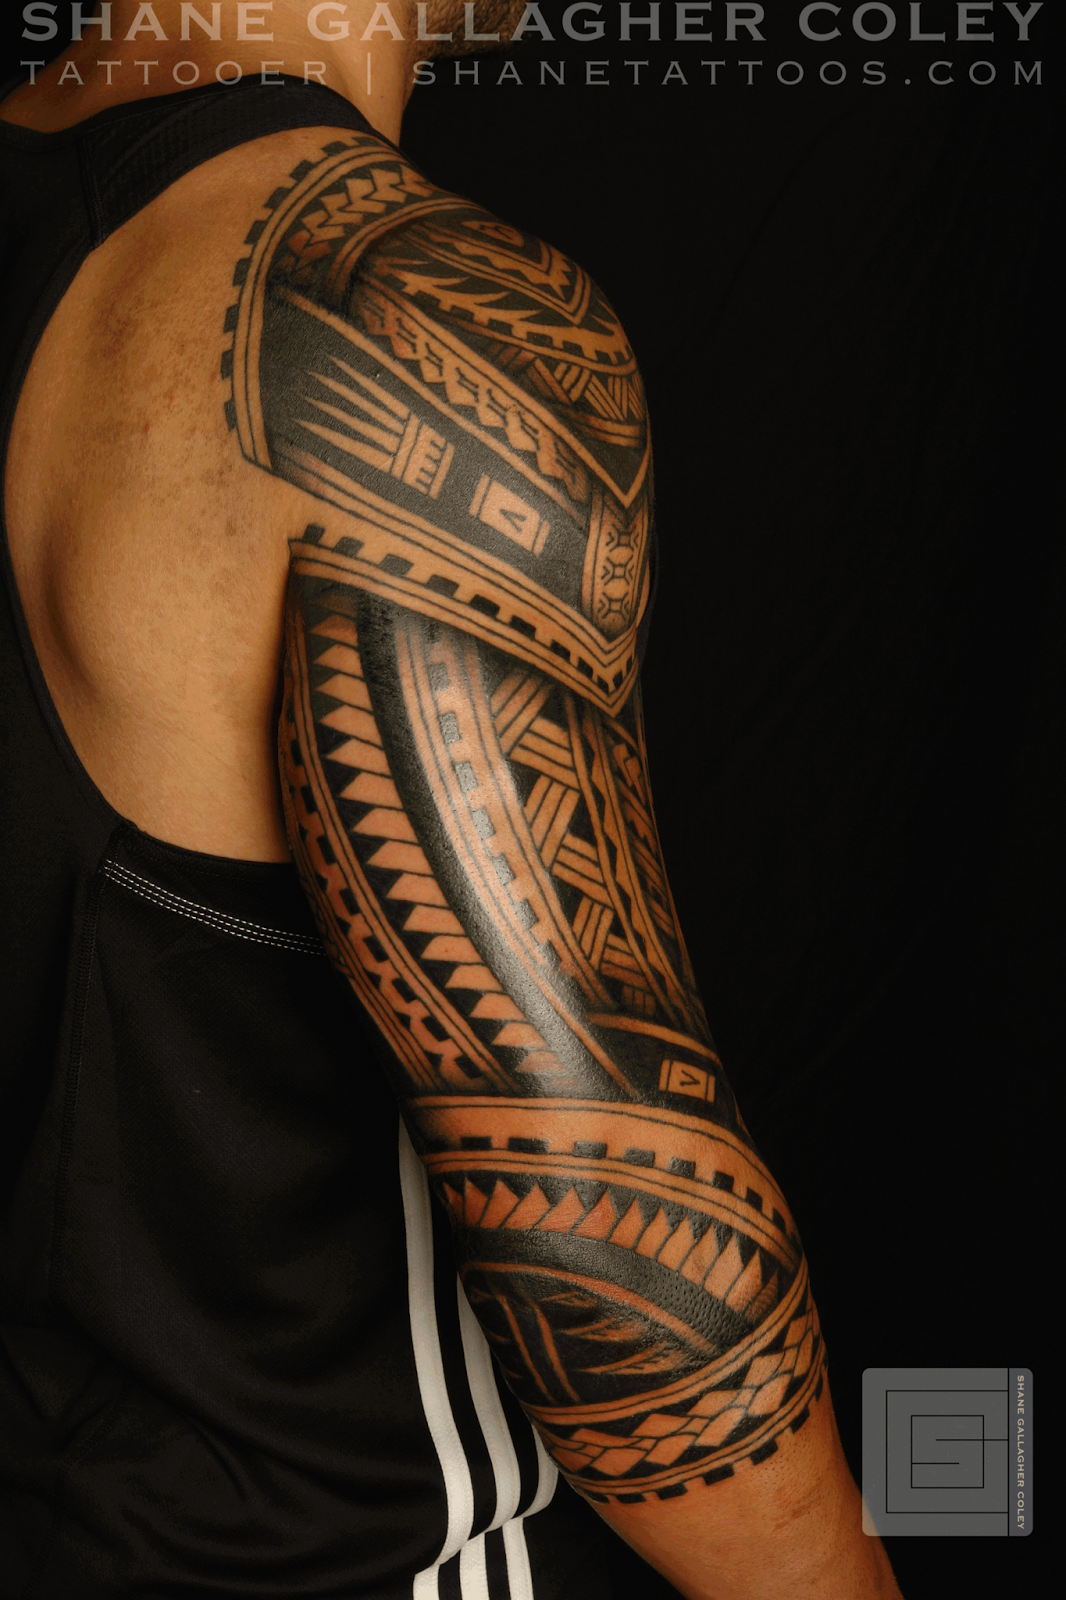 Best Maori Tattoos Inner Arm: Email This BlogThis! Share To